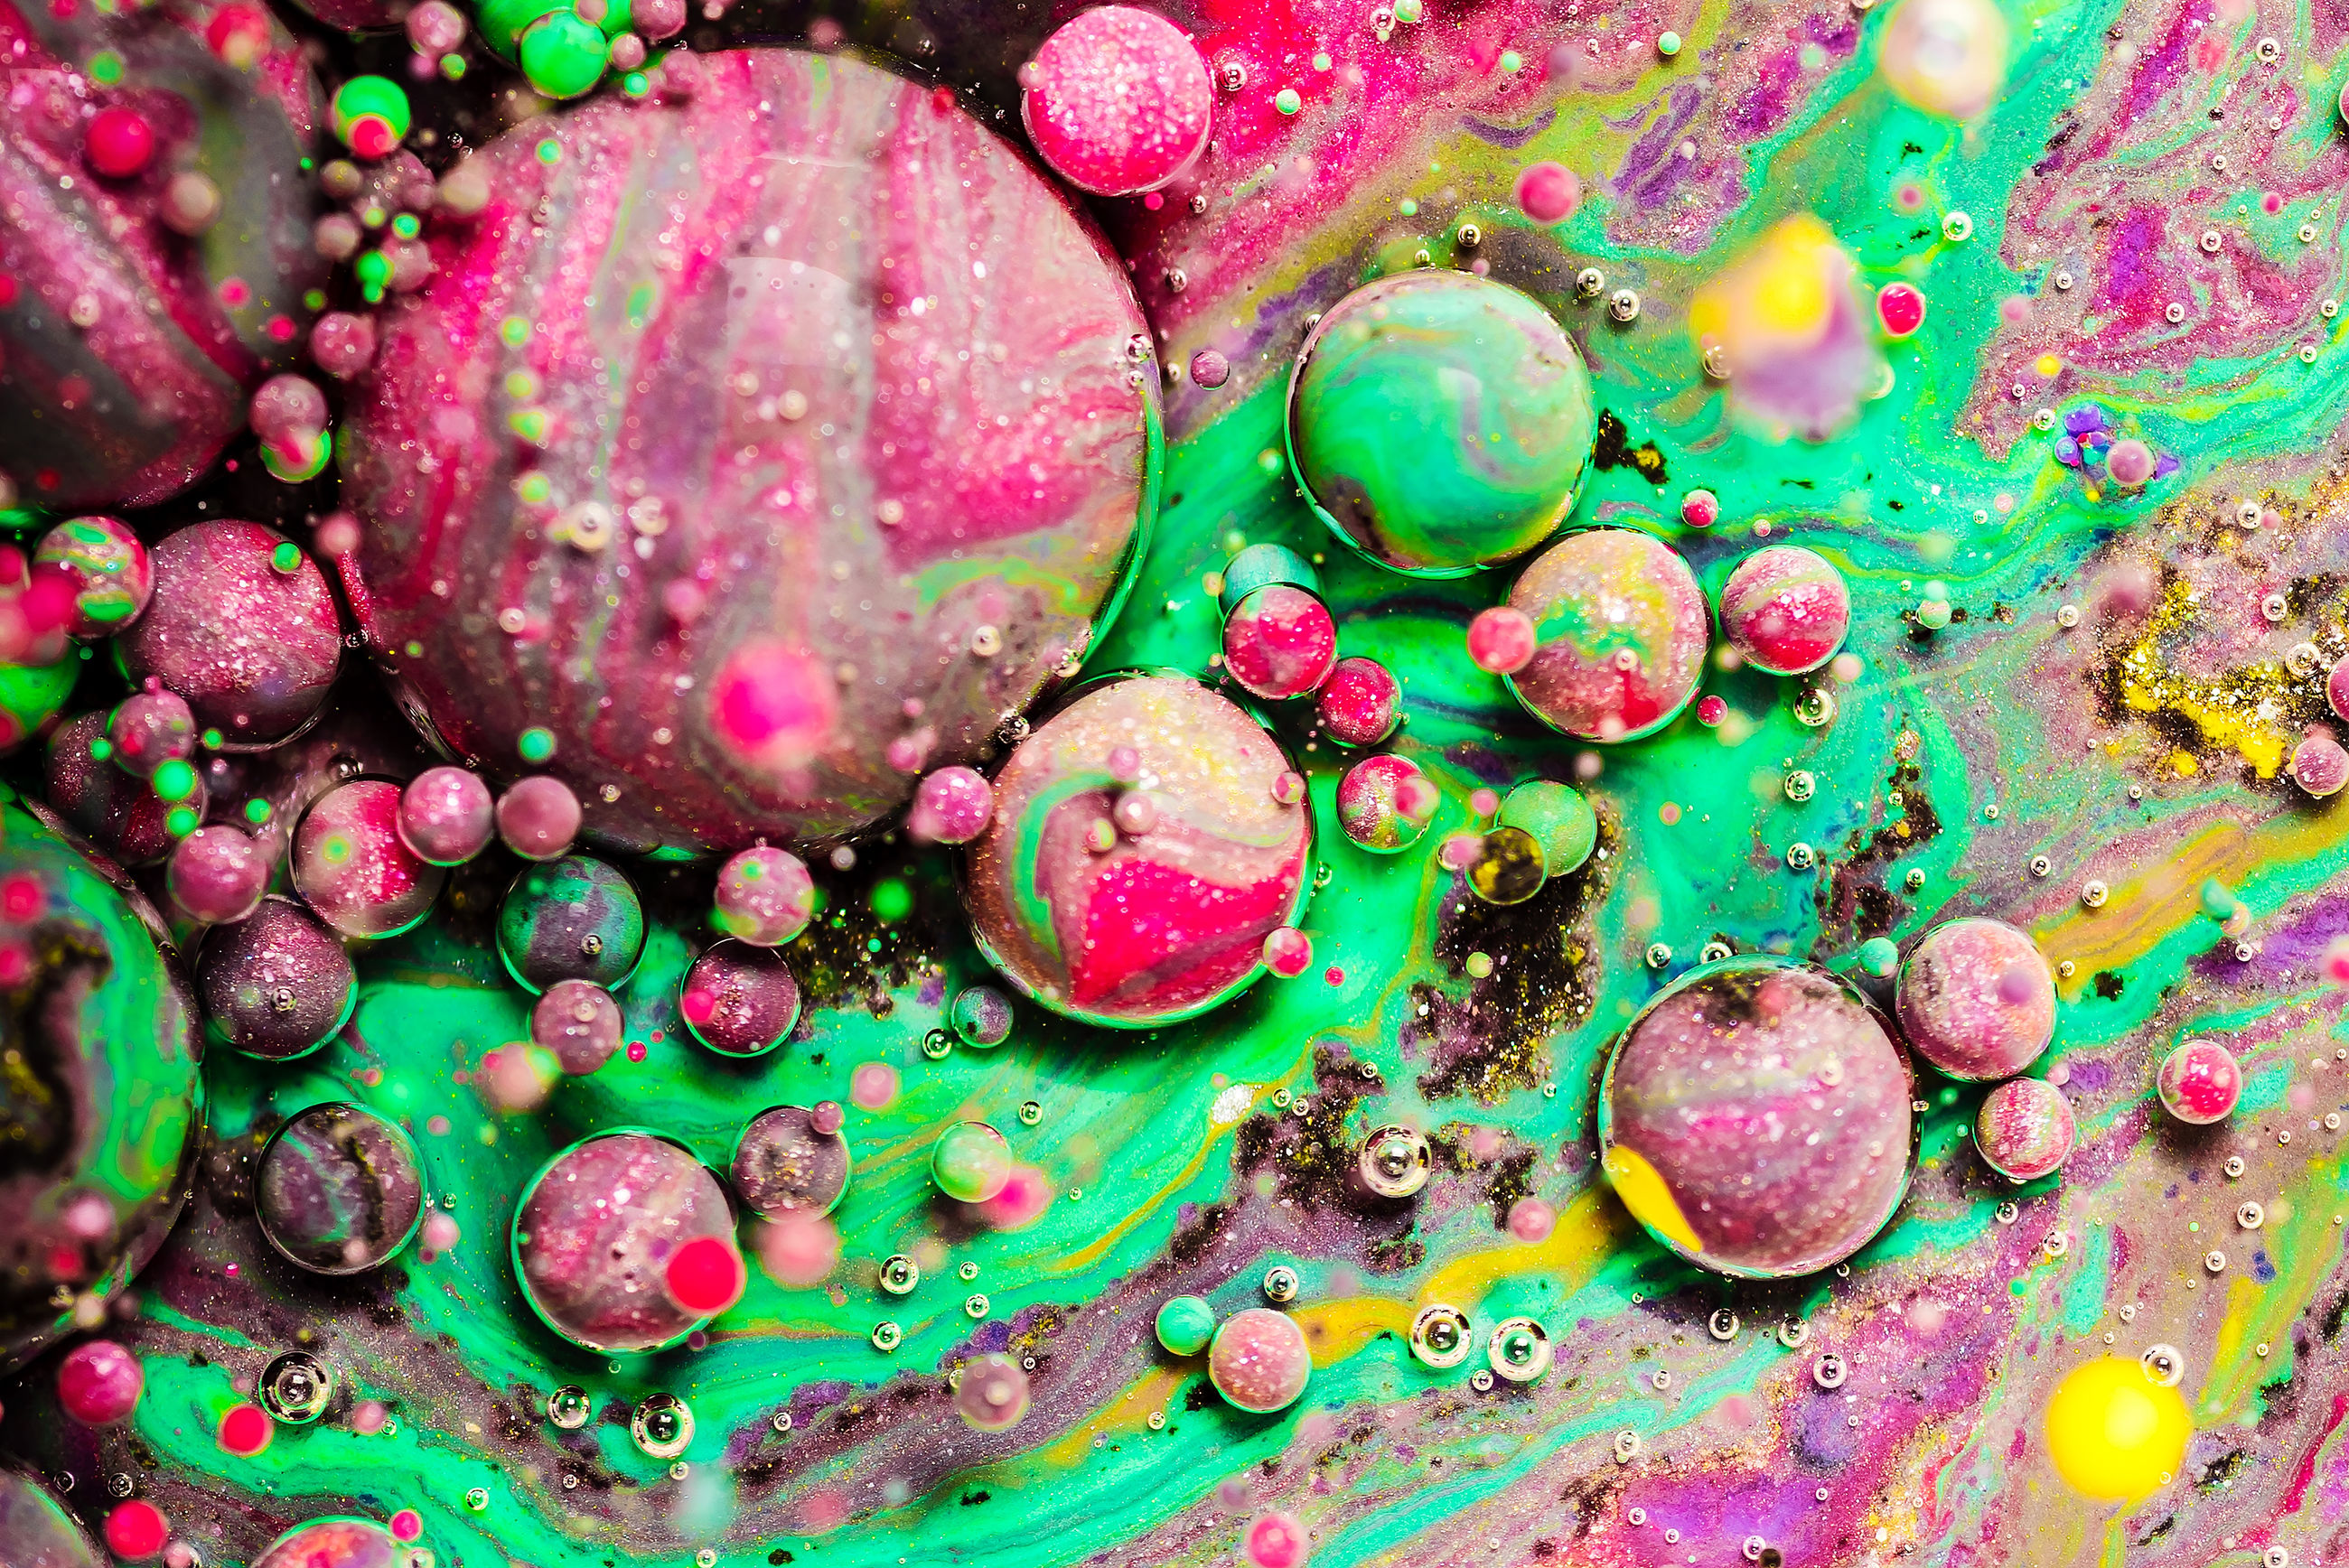 full frame, backgrounds, food and drink, close-up, food, multi colored, no people, freshness, healthy eating, wellbeing, large group of objects, indoors, still life, green color, studio shot, directly above, choice, abstract, pink color, variation, purple